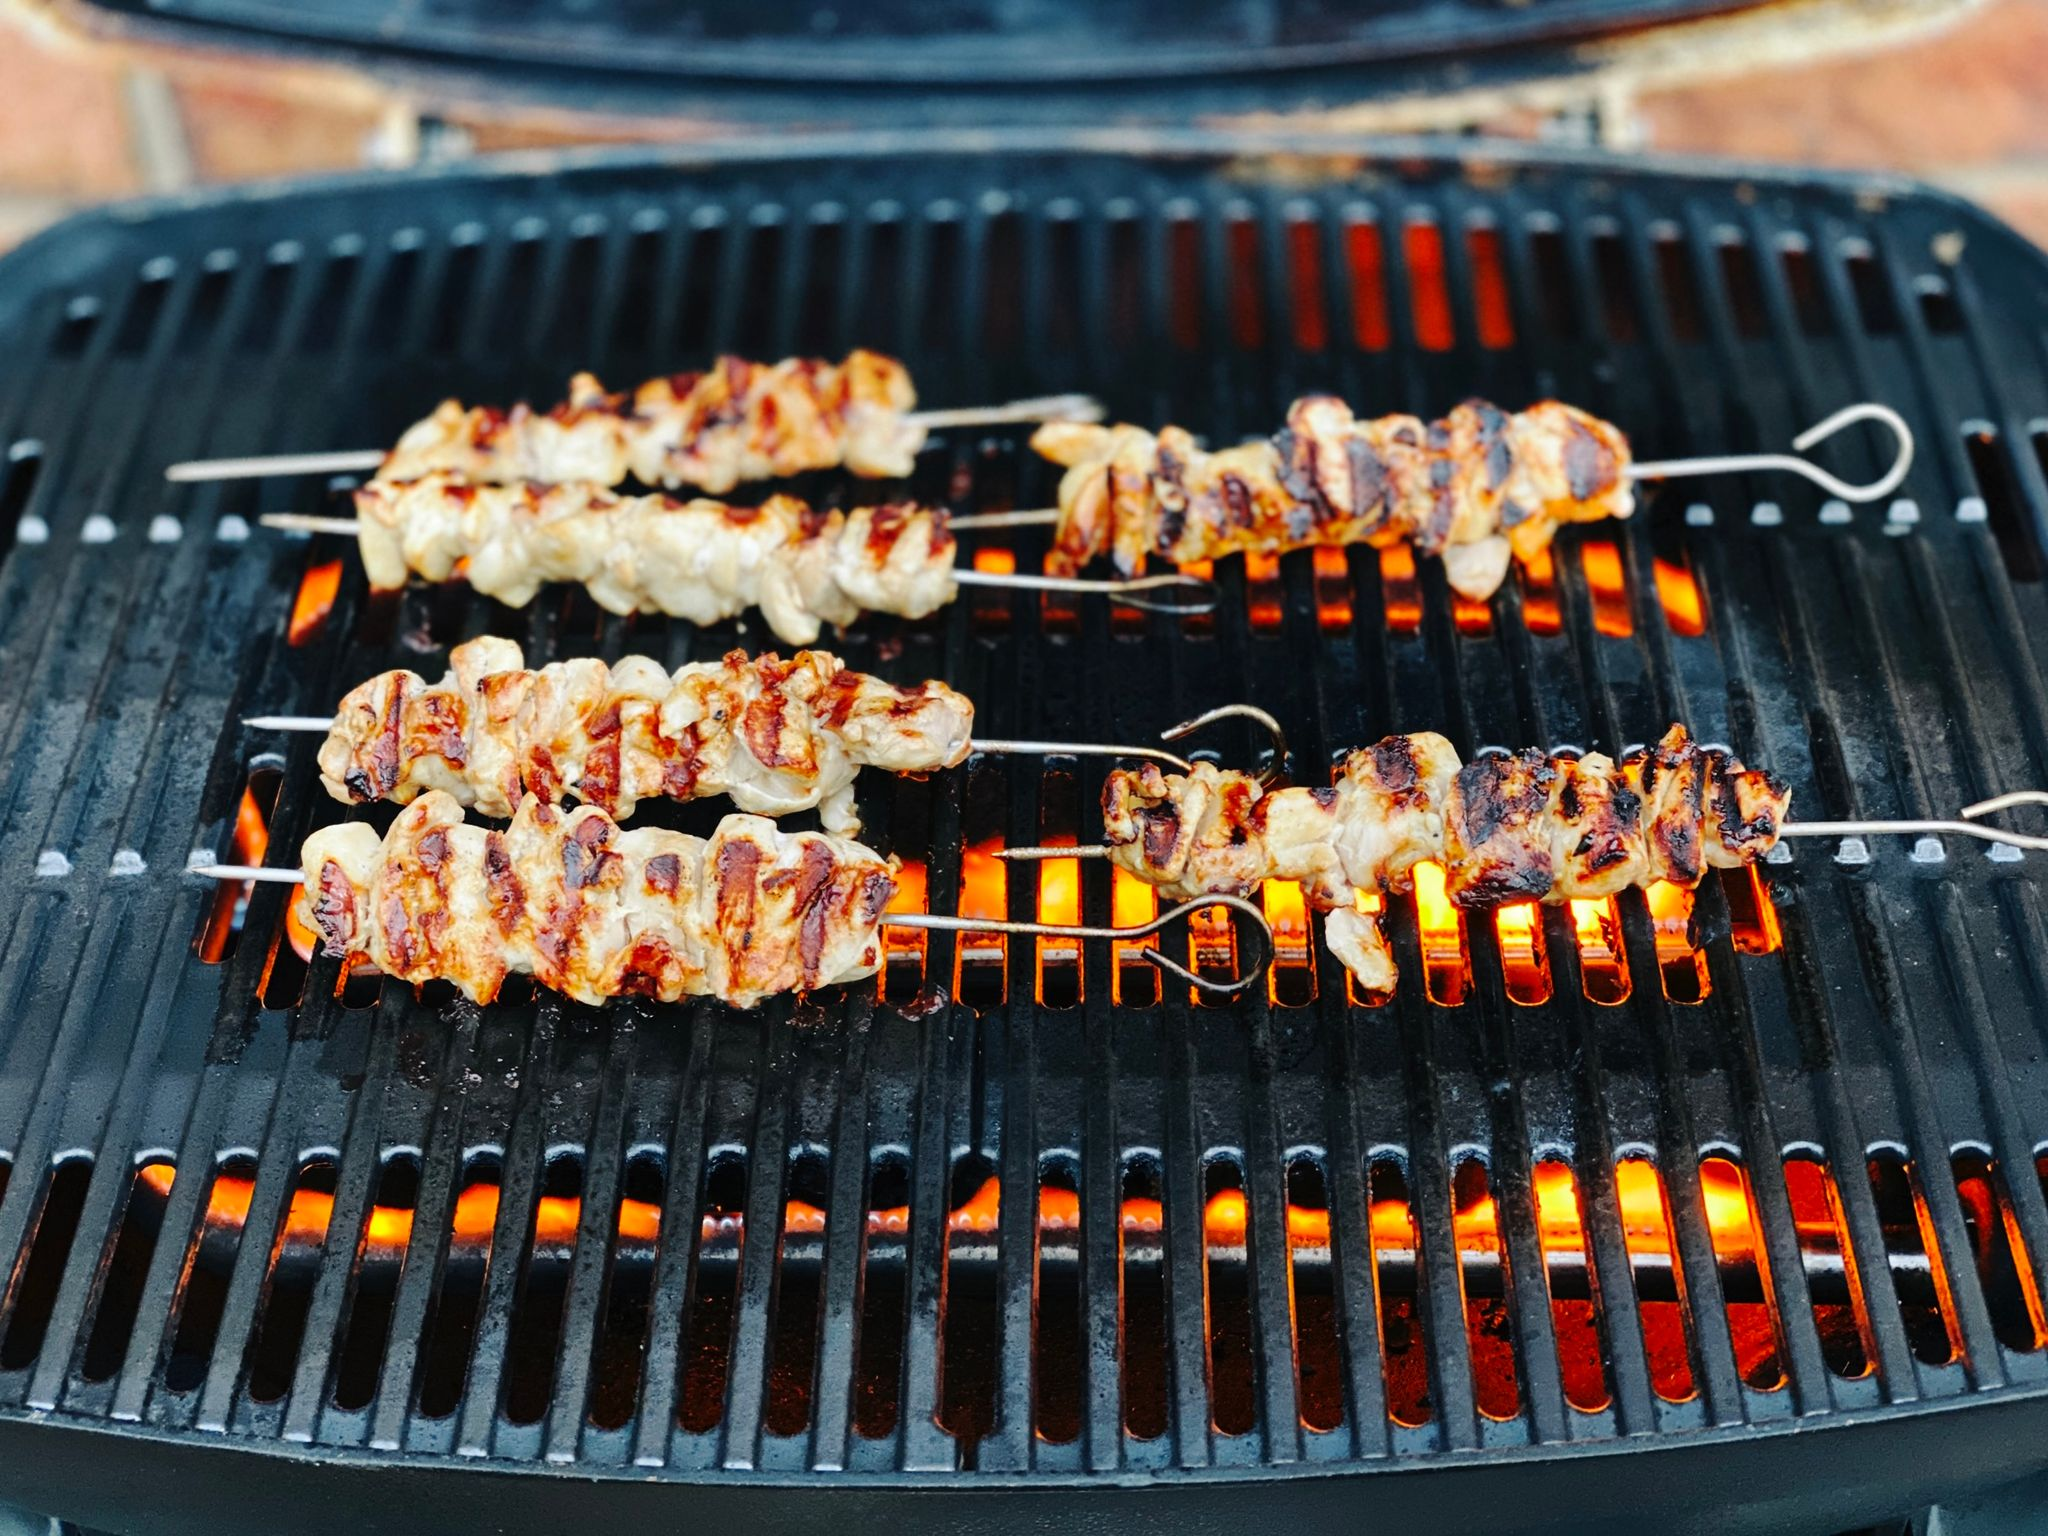 A photo of six chicken skewers being cooked on the barbecue. They've already been flipped over so the top side of them is nice and brown and they look delicious. Underneath the barbecue, the flames are quite orange.